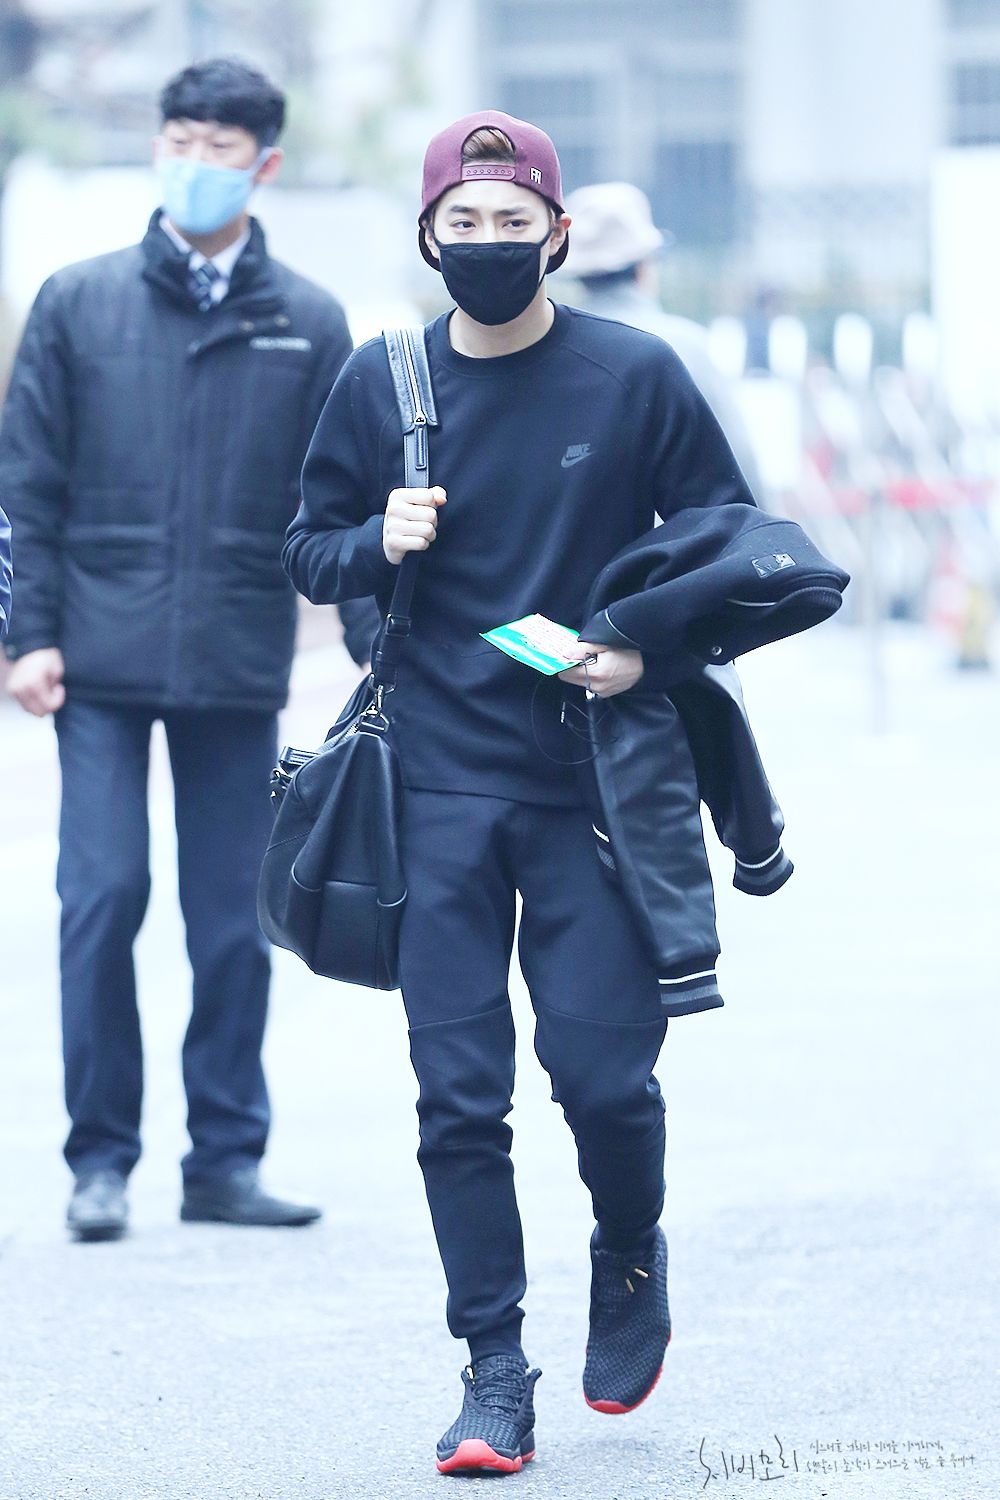 Suho - 150403 KBS Music Bank, commute Credit: Chibimori. (KBS 뮤직뱅크 출근길)